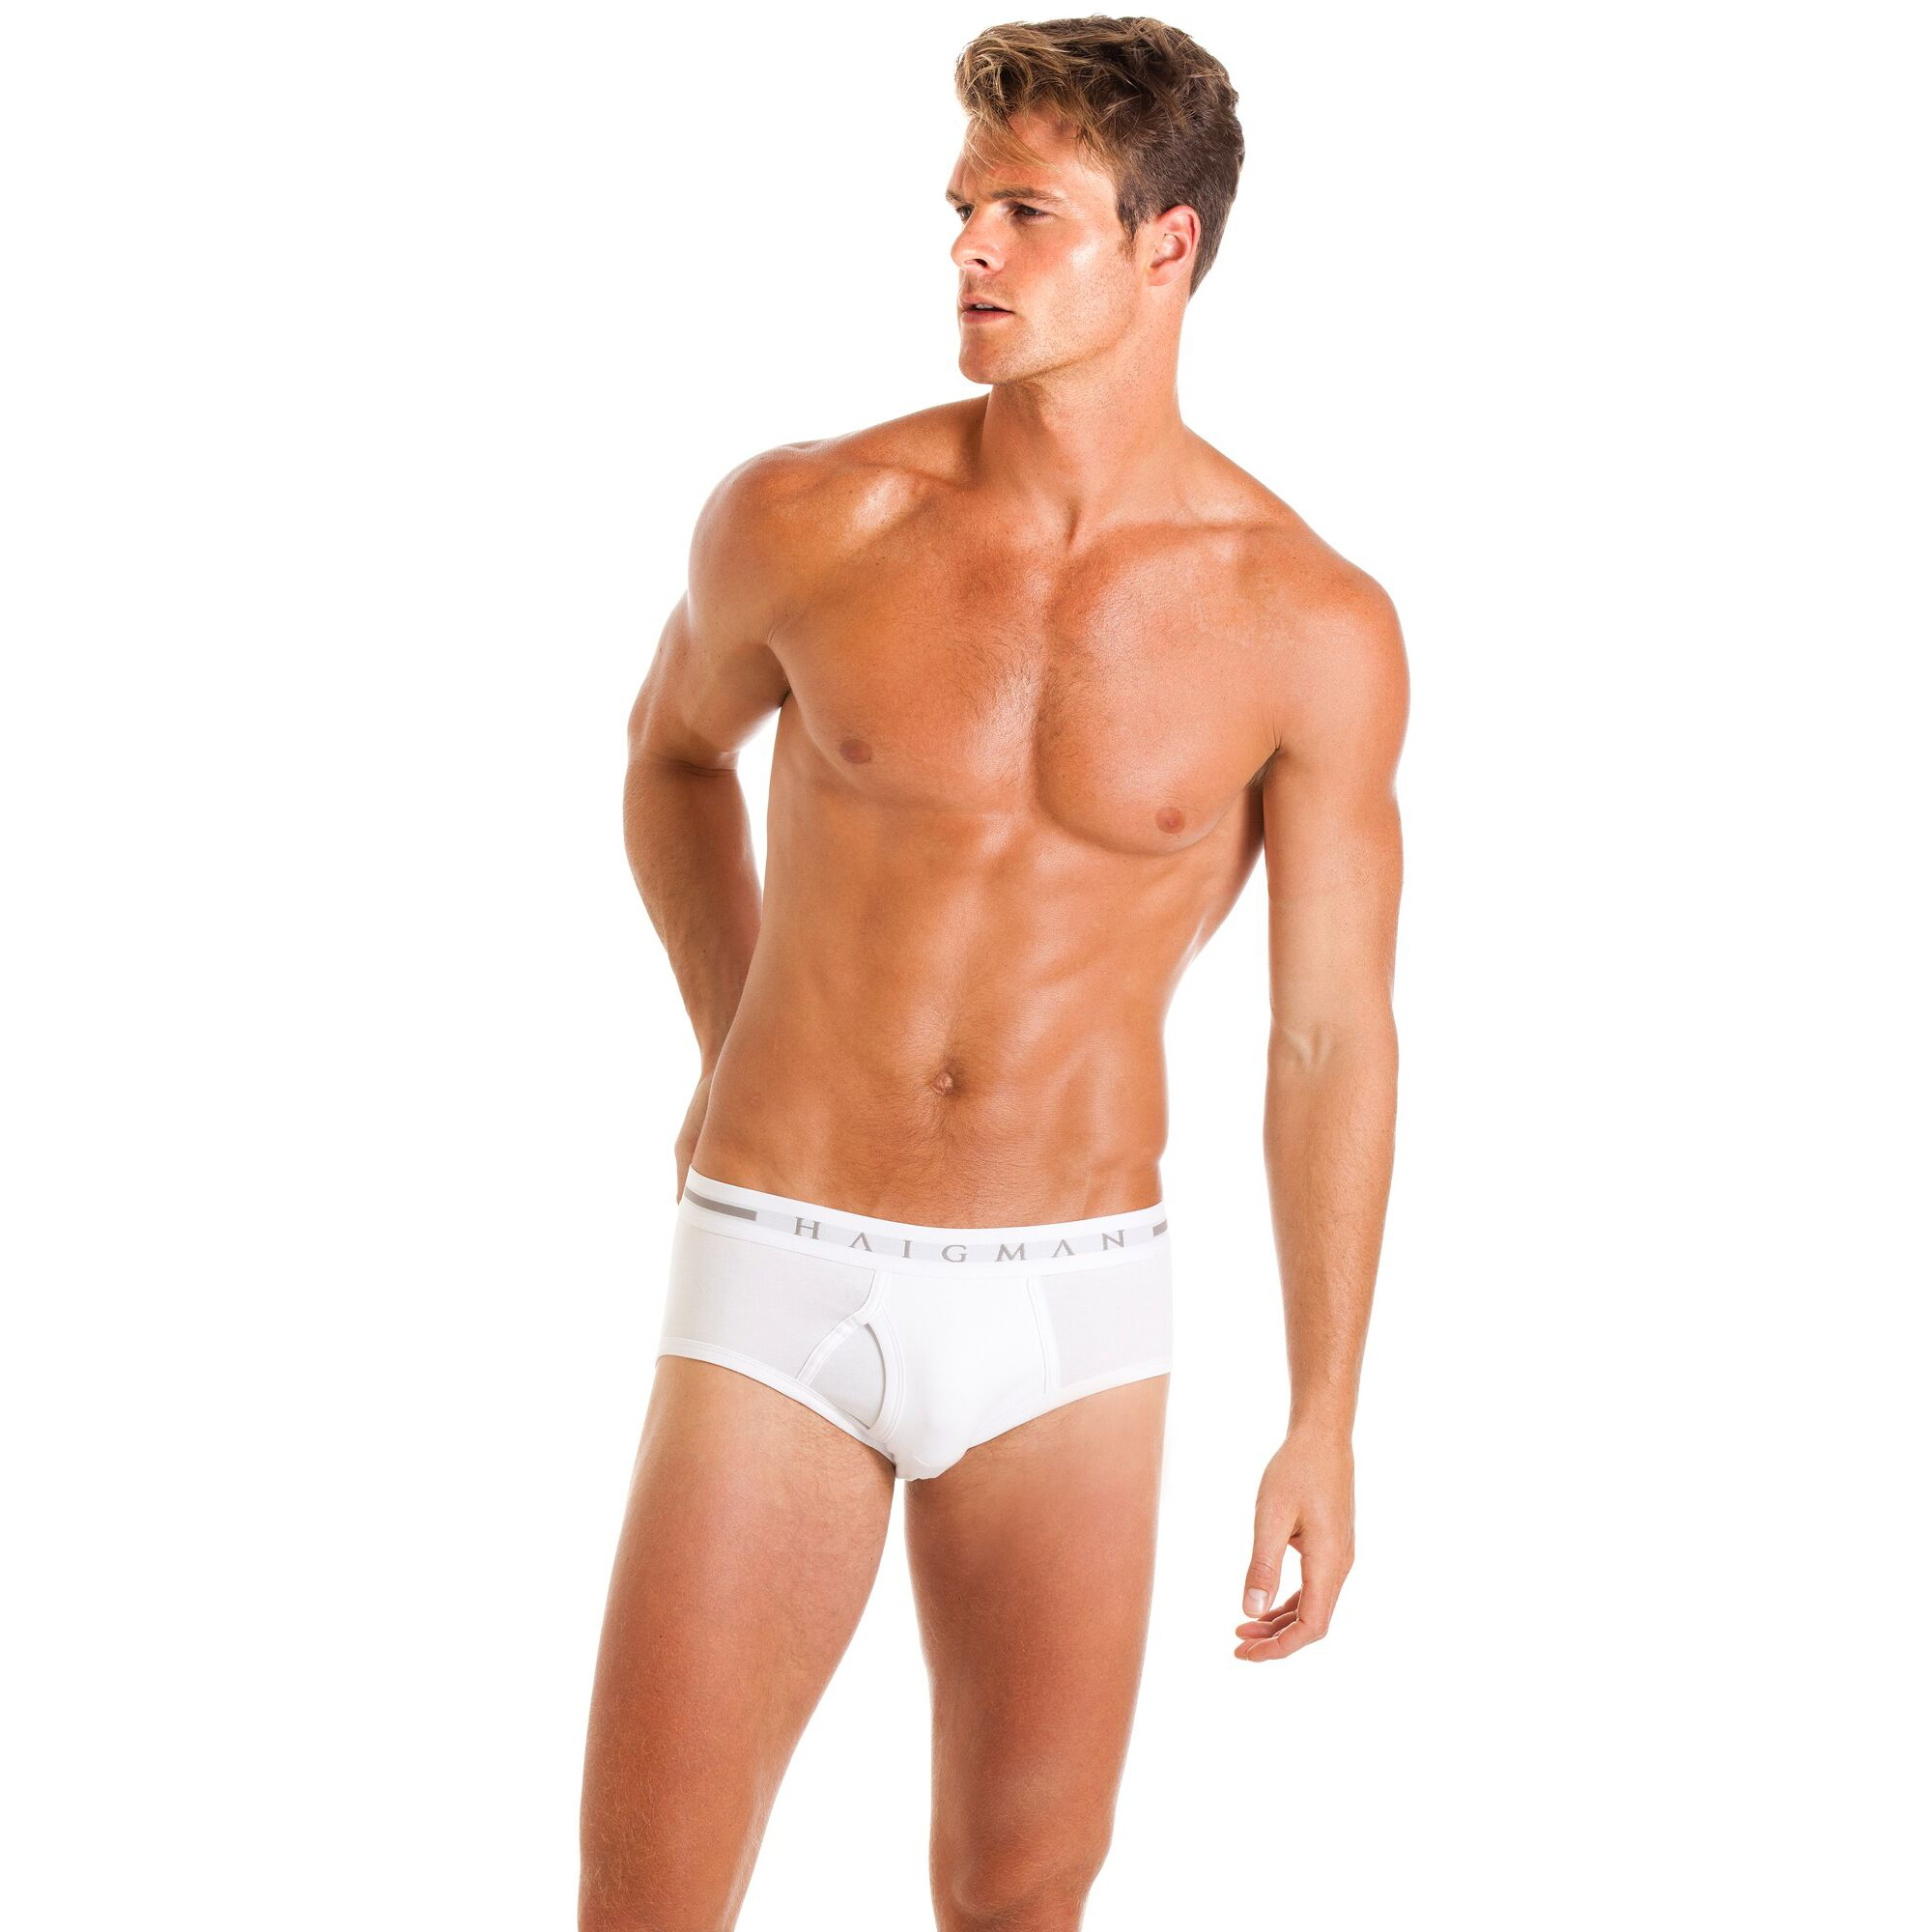 Haigman Briefs (3 Pack)